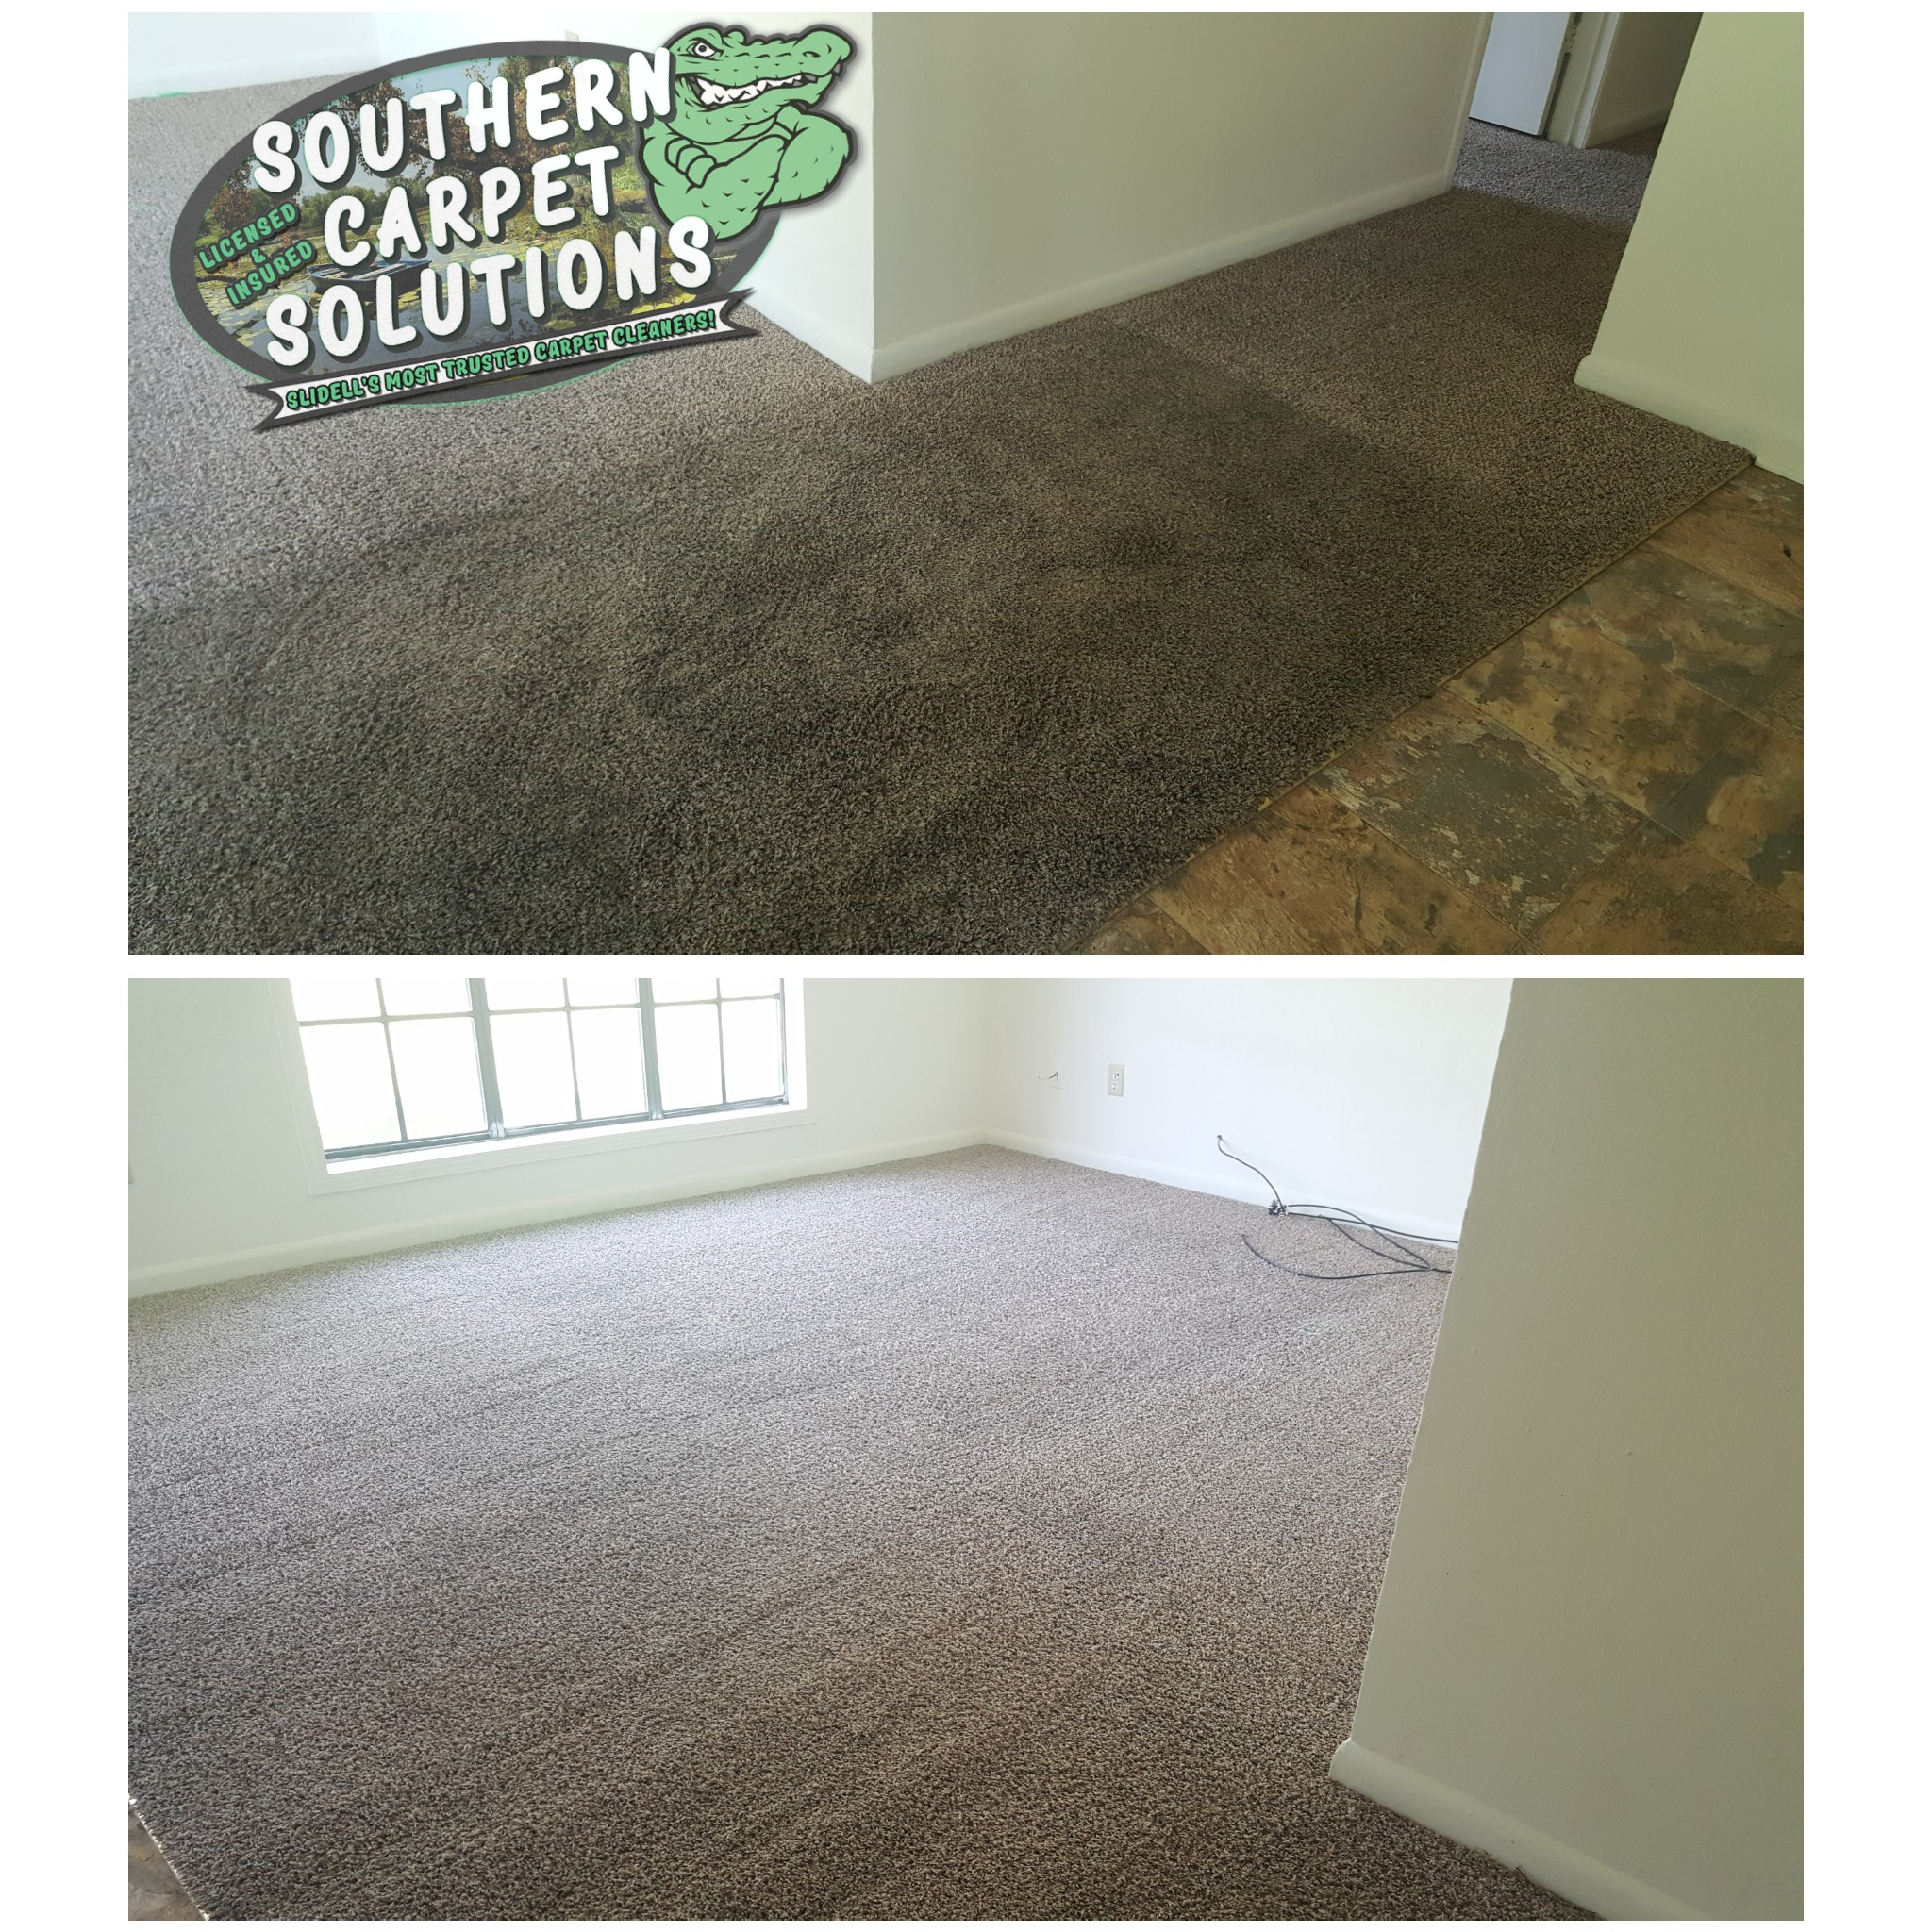 before-and-after-carpet-cleaning